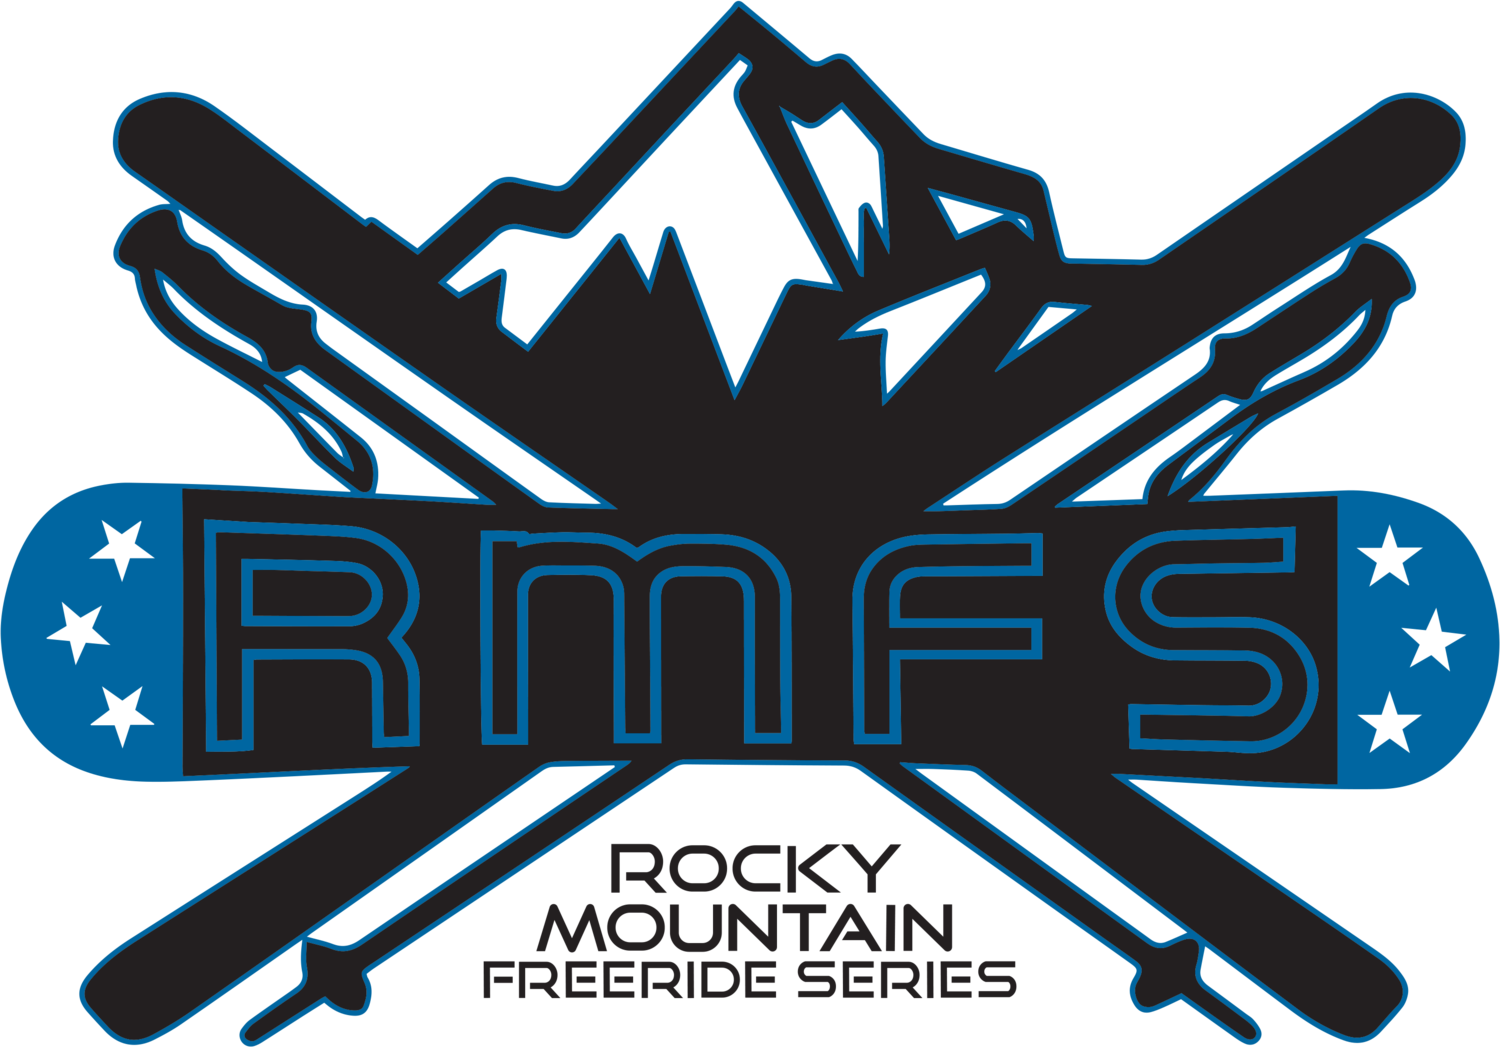 Rocky Mountain Freeride Series